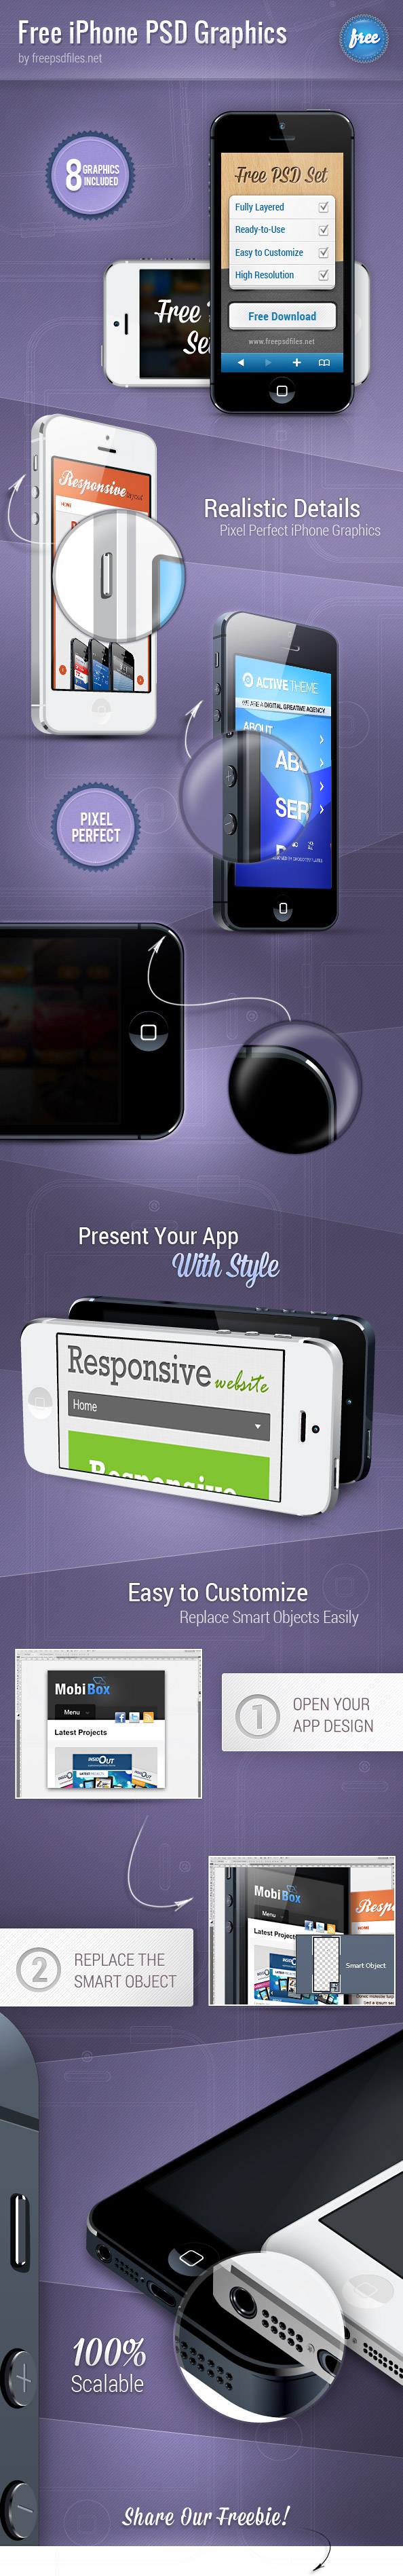 iPhone PSD Graphics Preview